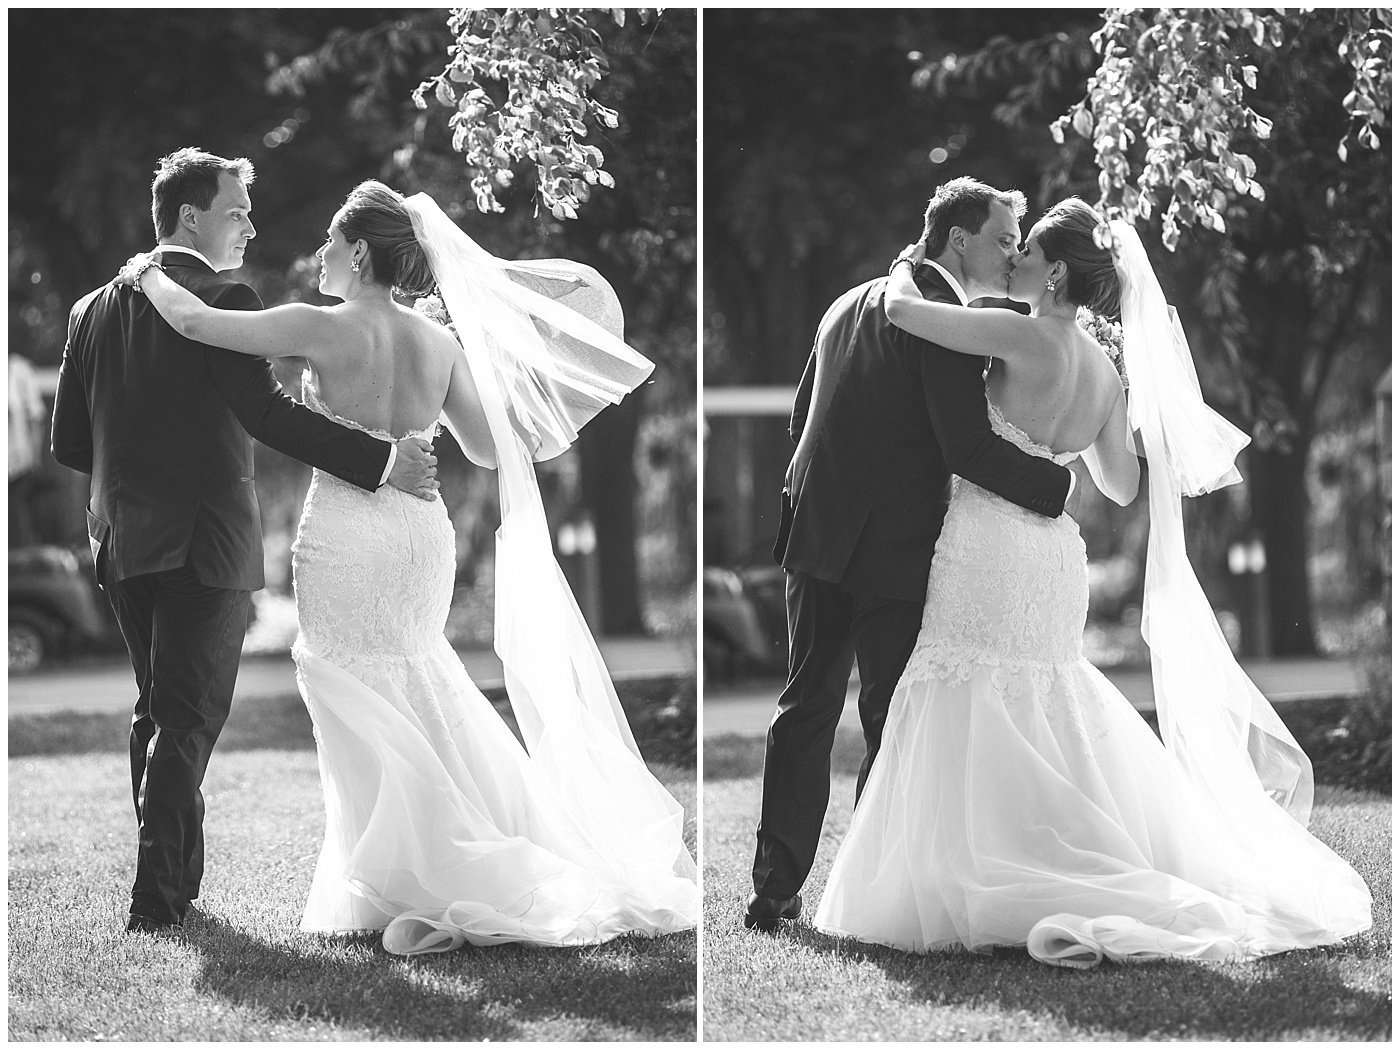 Kim & Lee | A Summer Wedding at Brookside Country Club 138